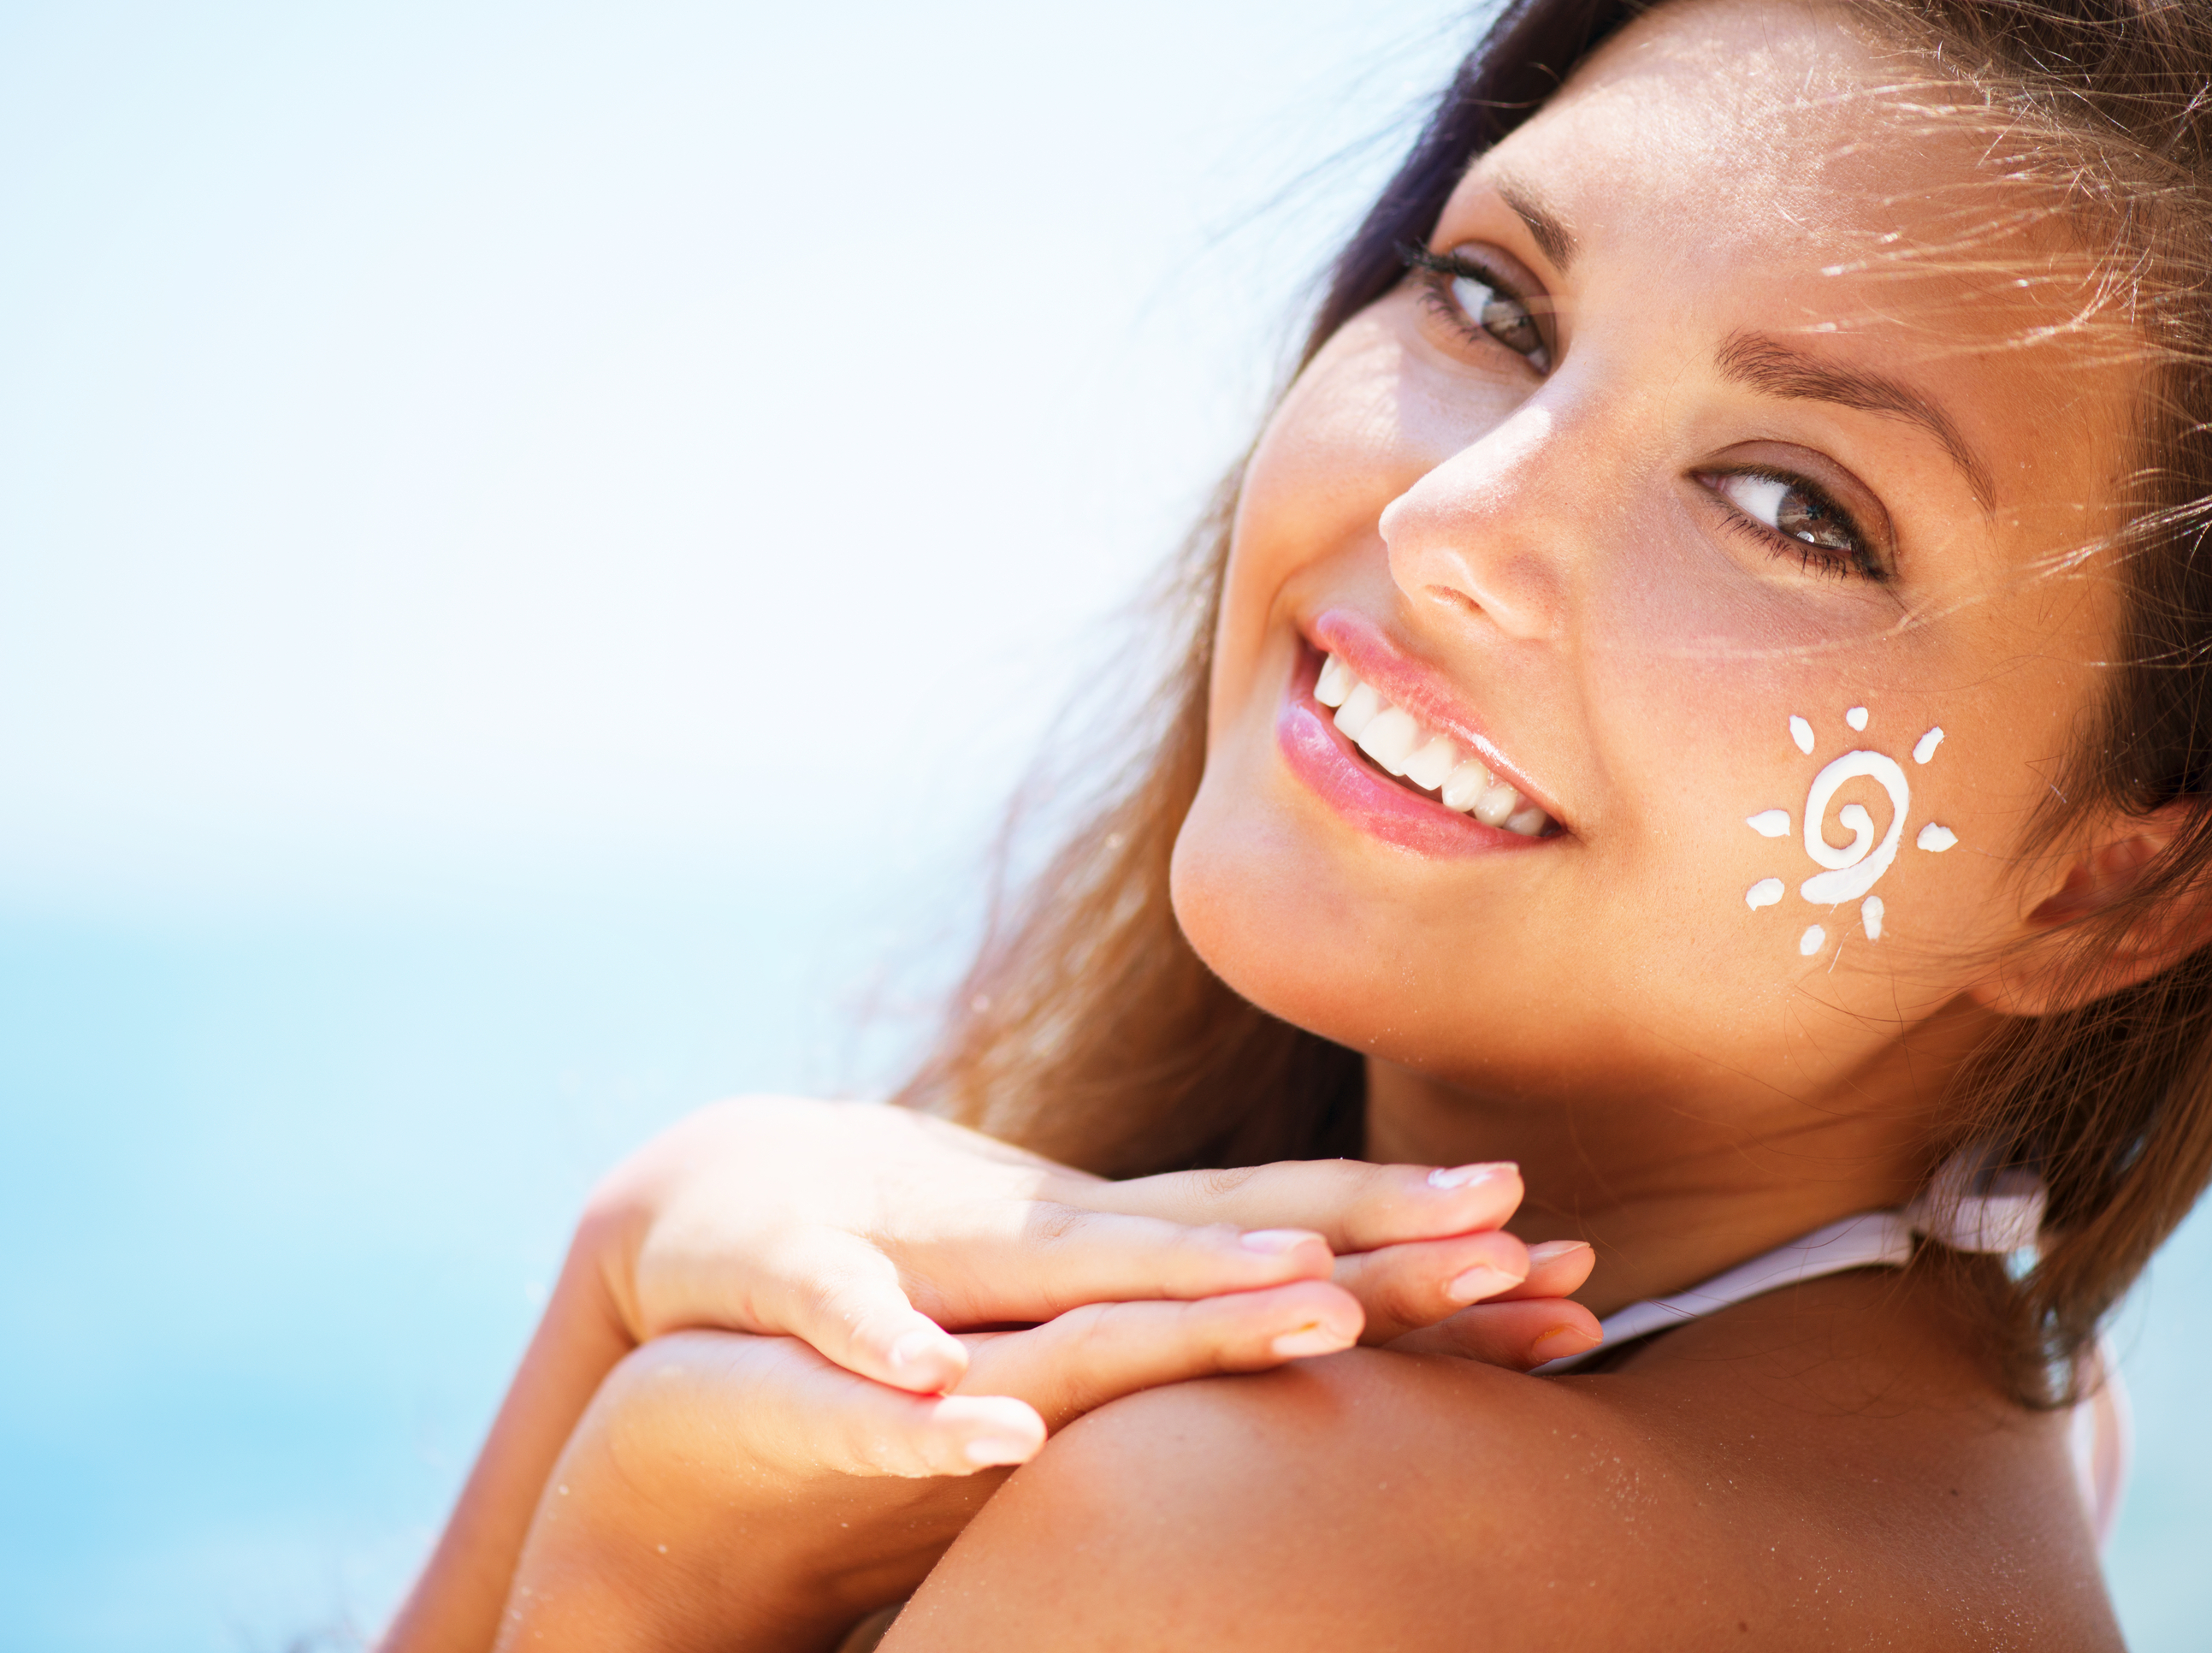 Happy woman with a sun made of sun cream on her face.